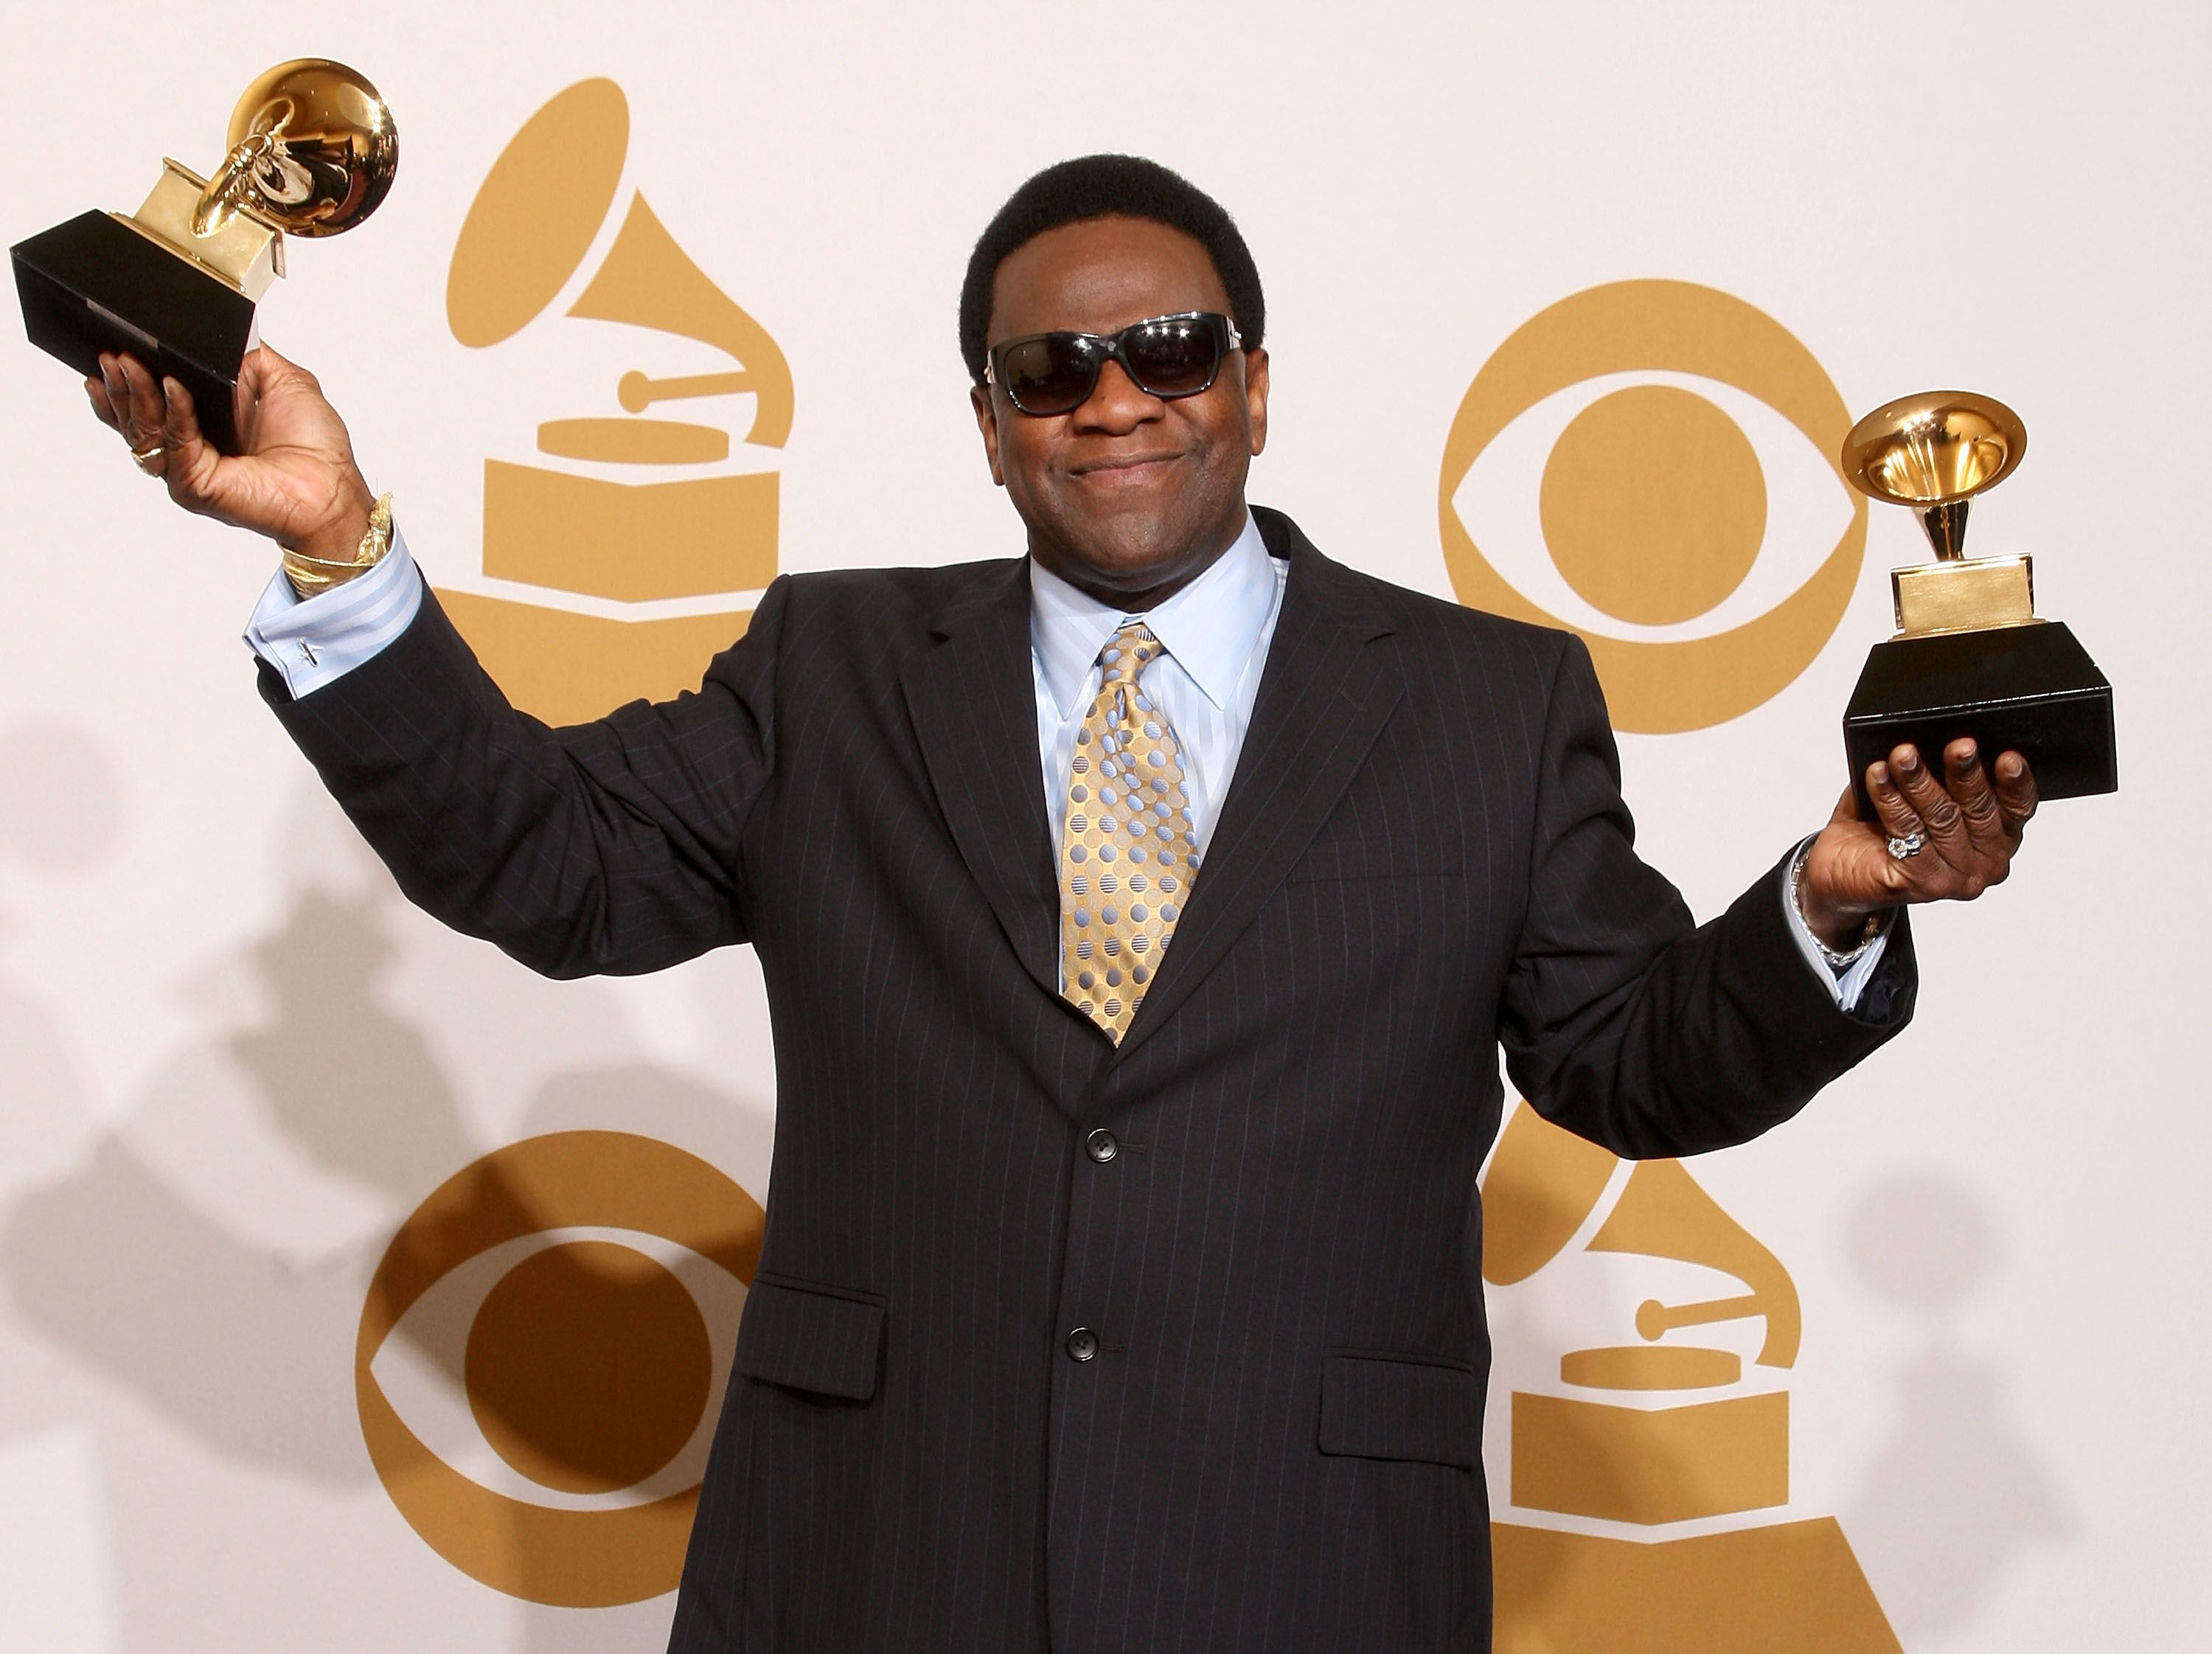 Al Green during the 51st Annual Grammy Awards held at the Staples Center on February 8, 2009 in Los Angeles, California. | Source: Getty Images